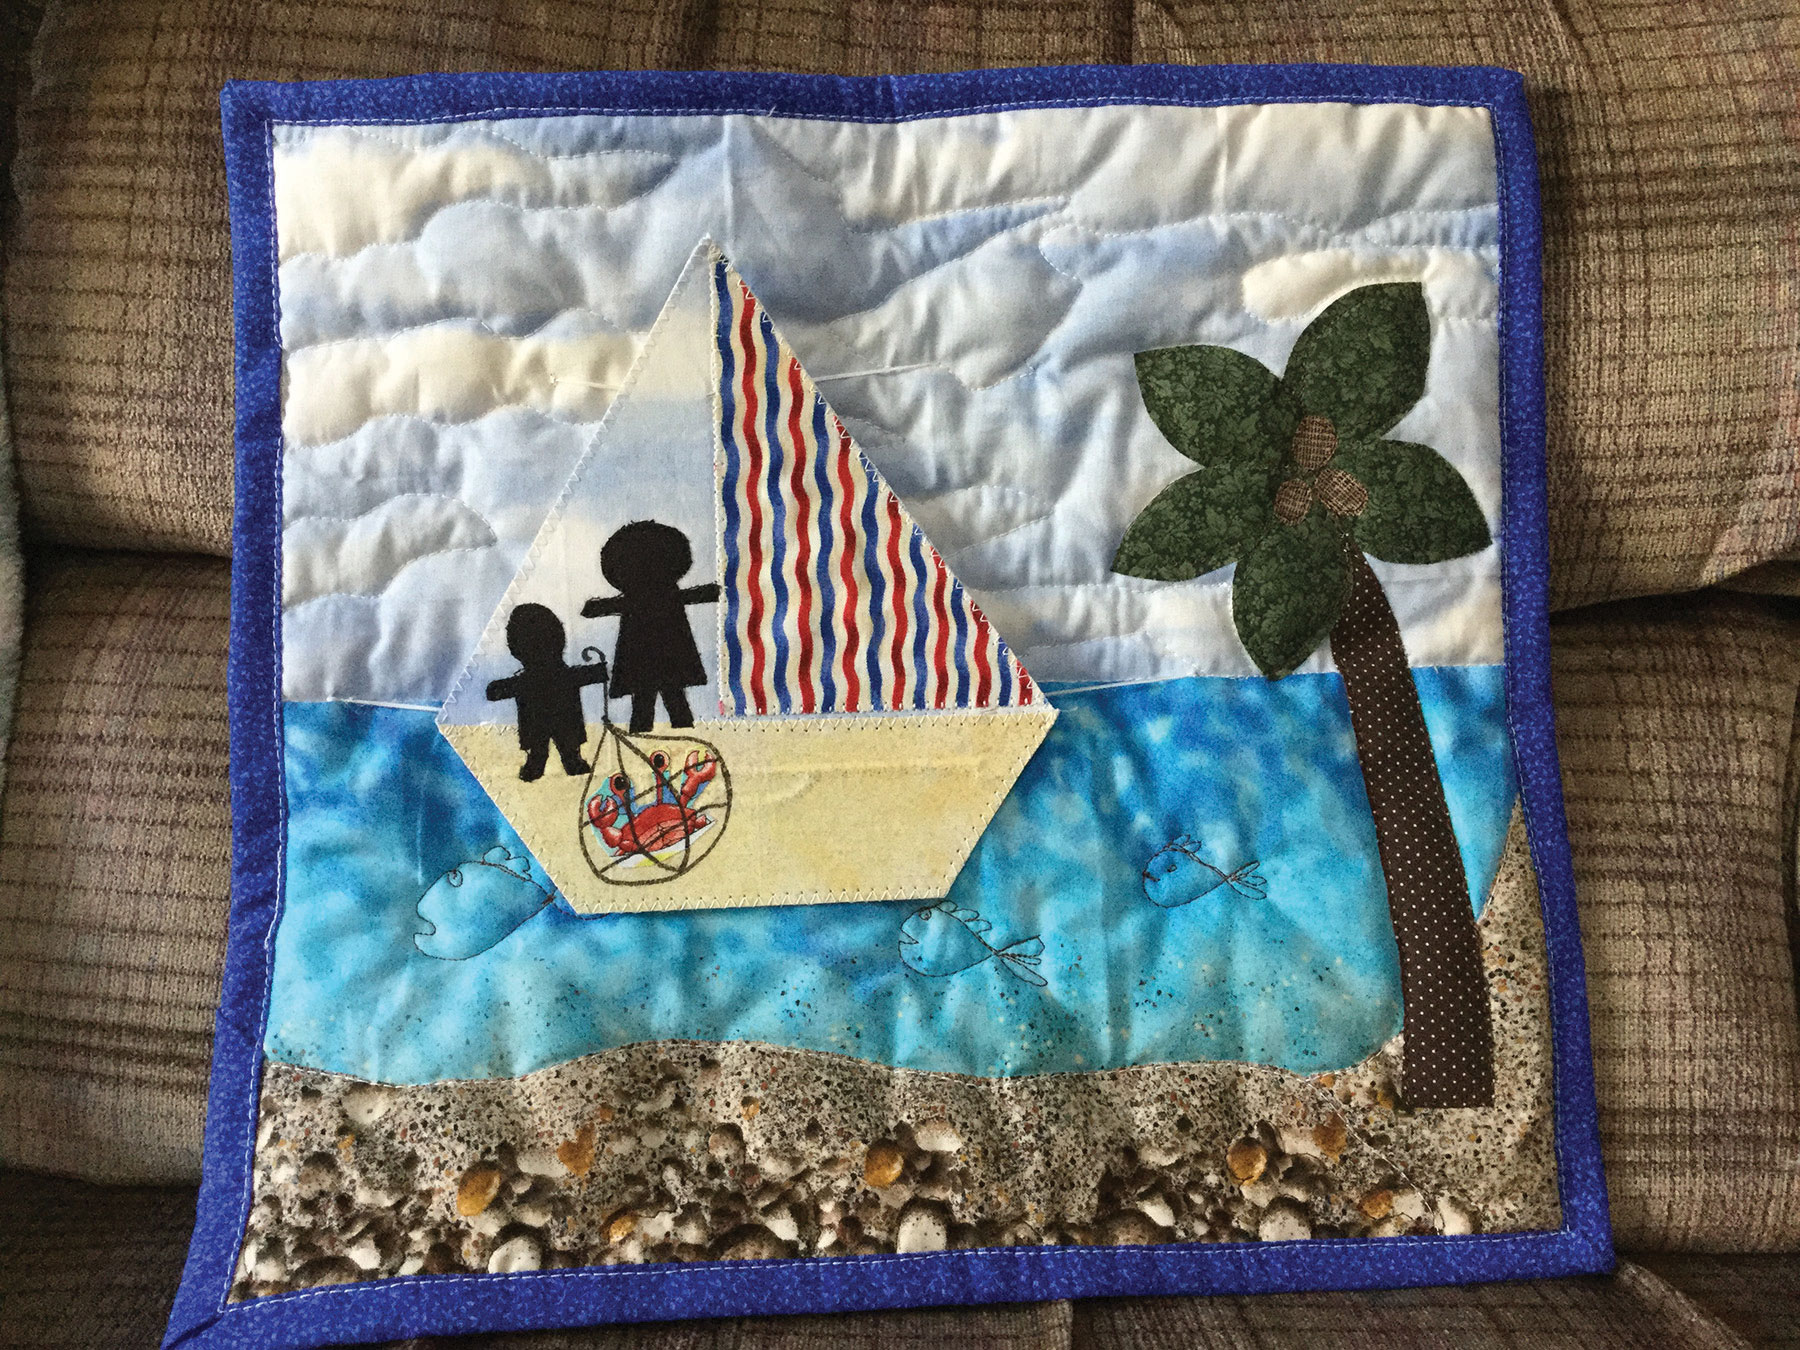 Beach Bum variation designed and made by Diane Palmer and grandson Nathan, from Quiltmaker Sept/Oct 2017